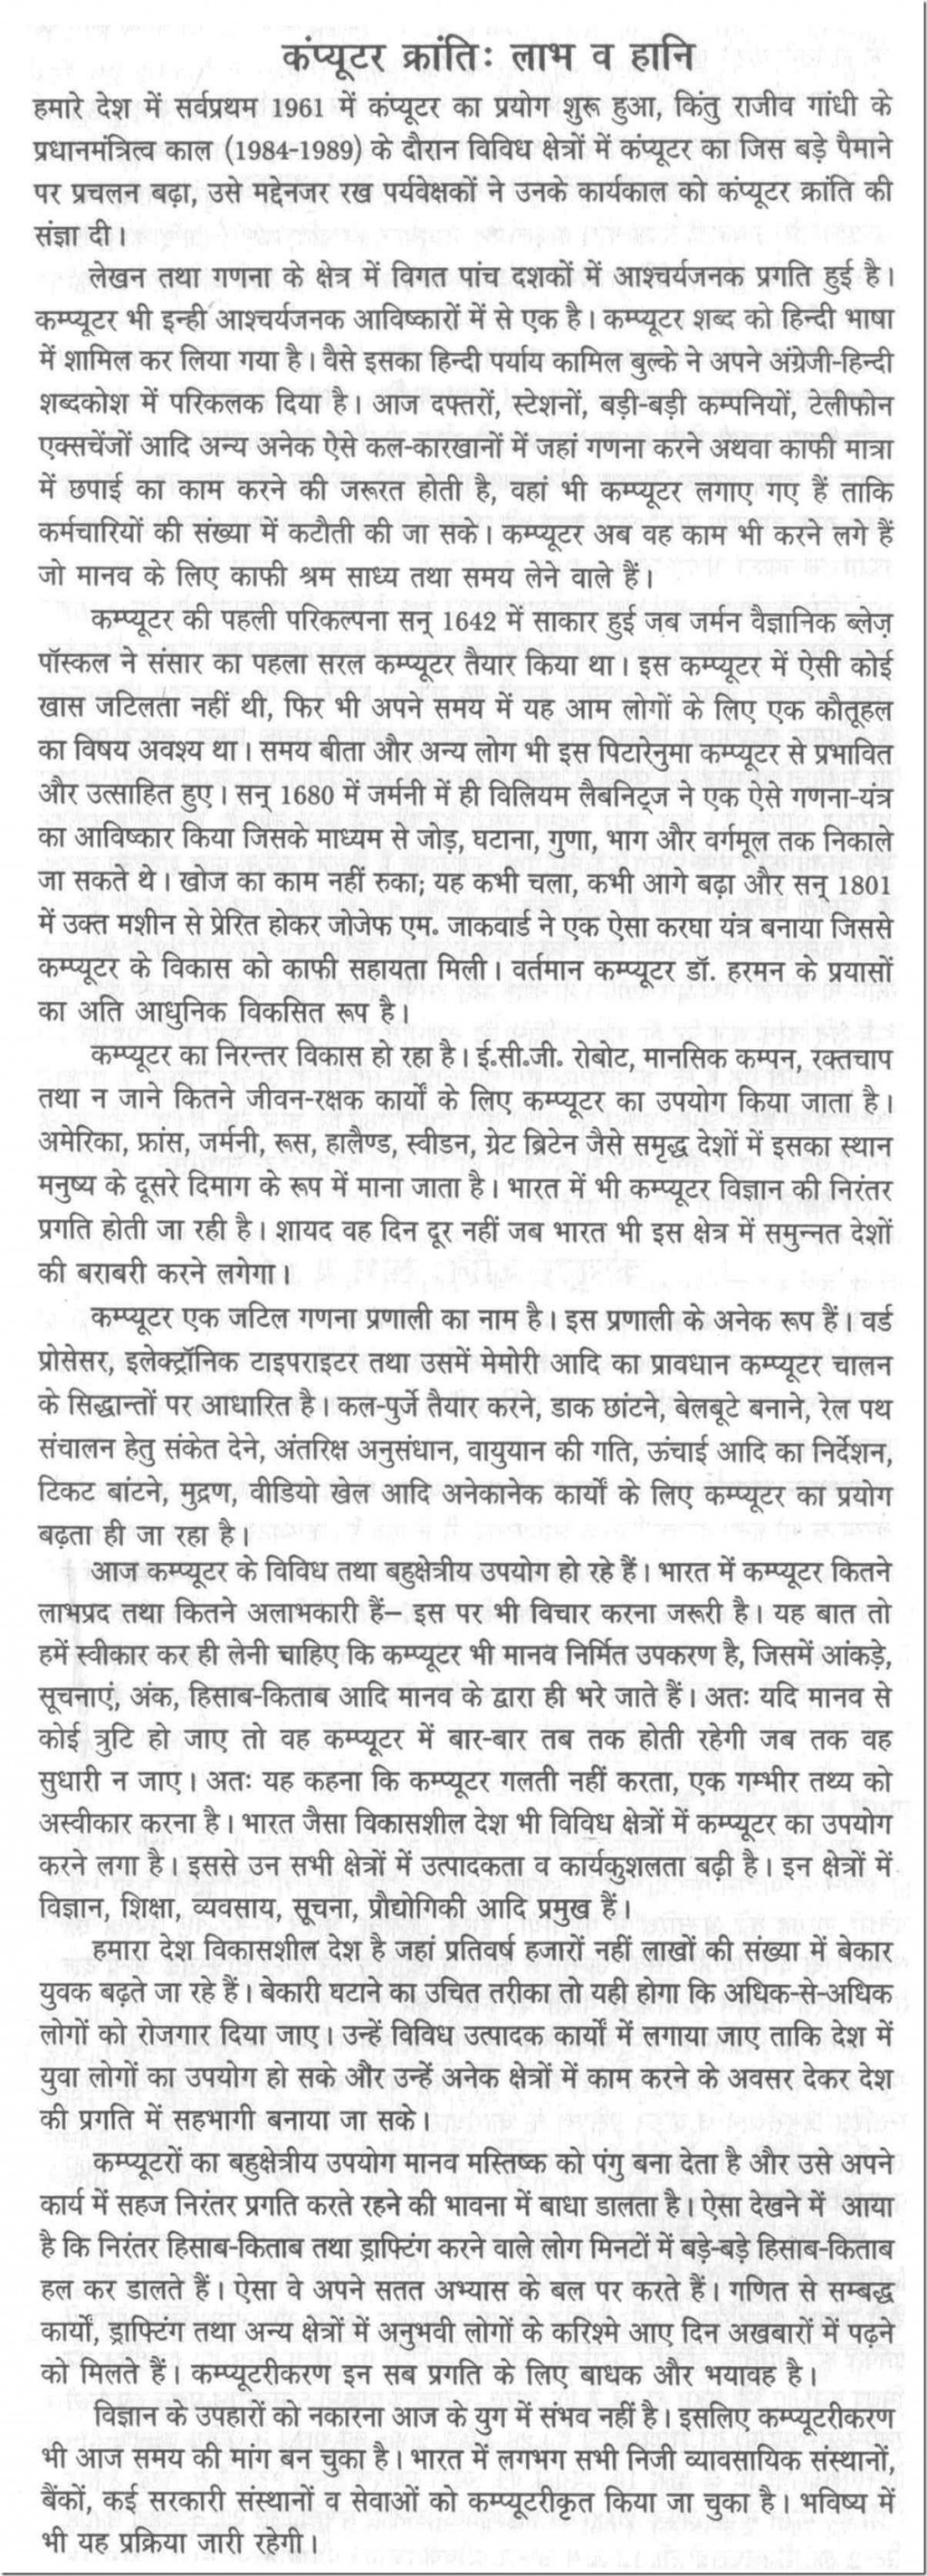 007 Essay Example 10008 Thumb Advantage And Disadvantage Of Shocking Science Advantages Disadvantages With Quotes In Hindi On Language Large